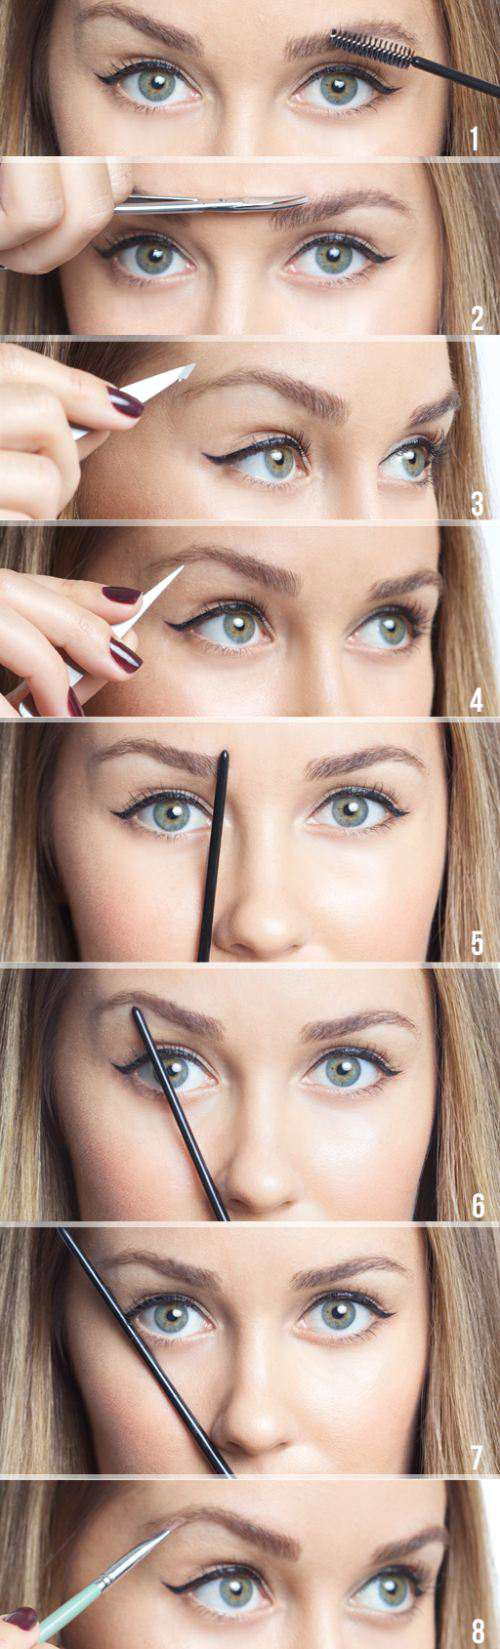 How to groom your eyebrows